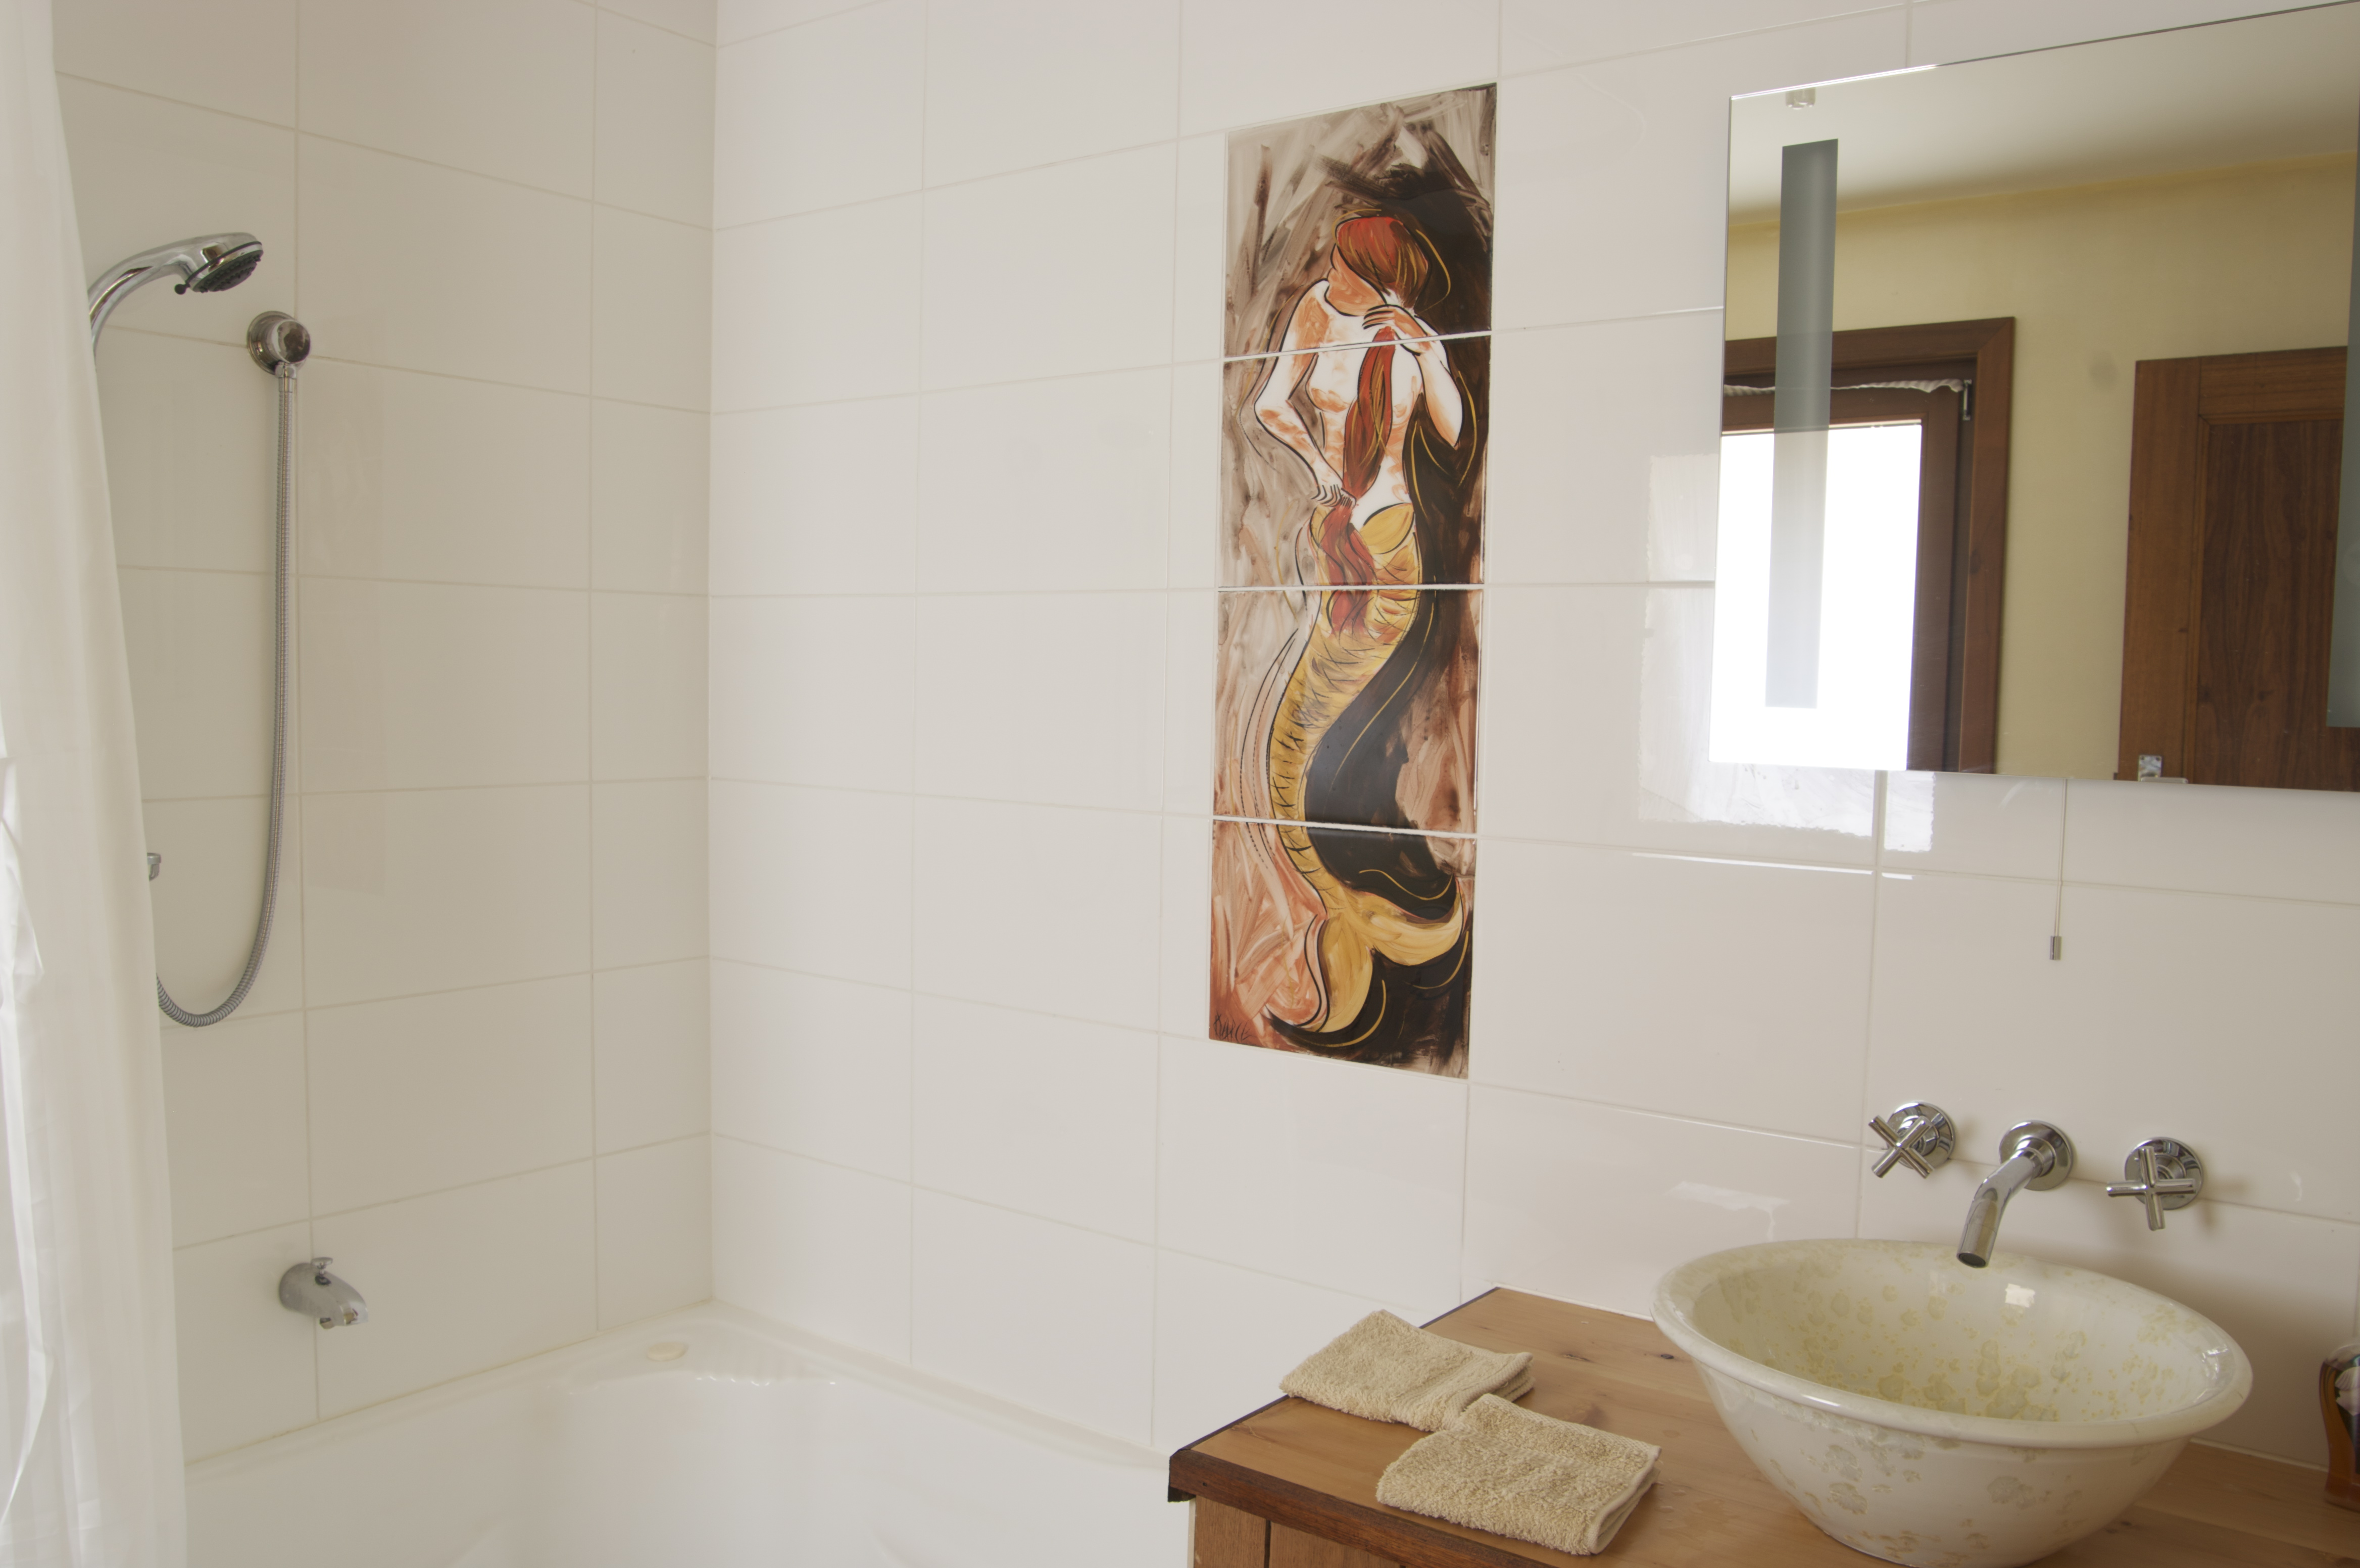 Forest Walks Lodge - oroginal artwork is featured throughout the house, examples of eco princilpes and local design.